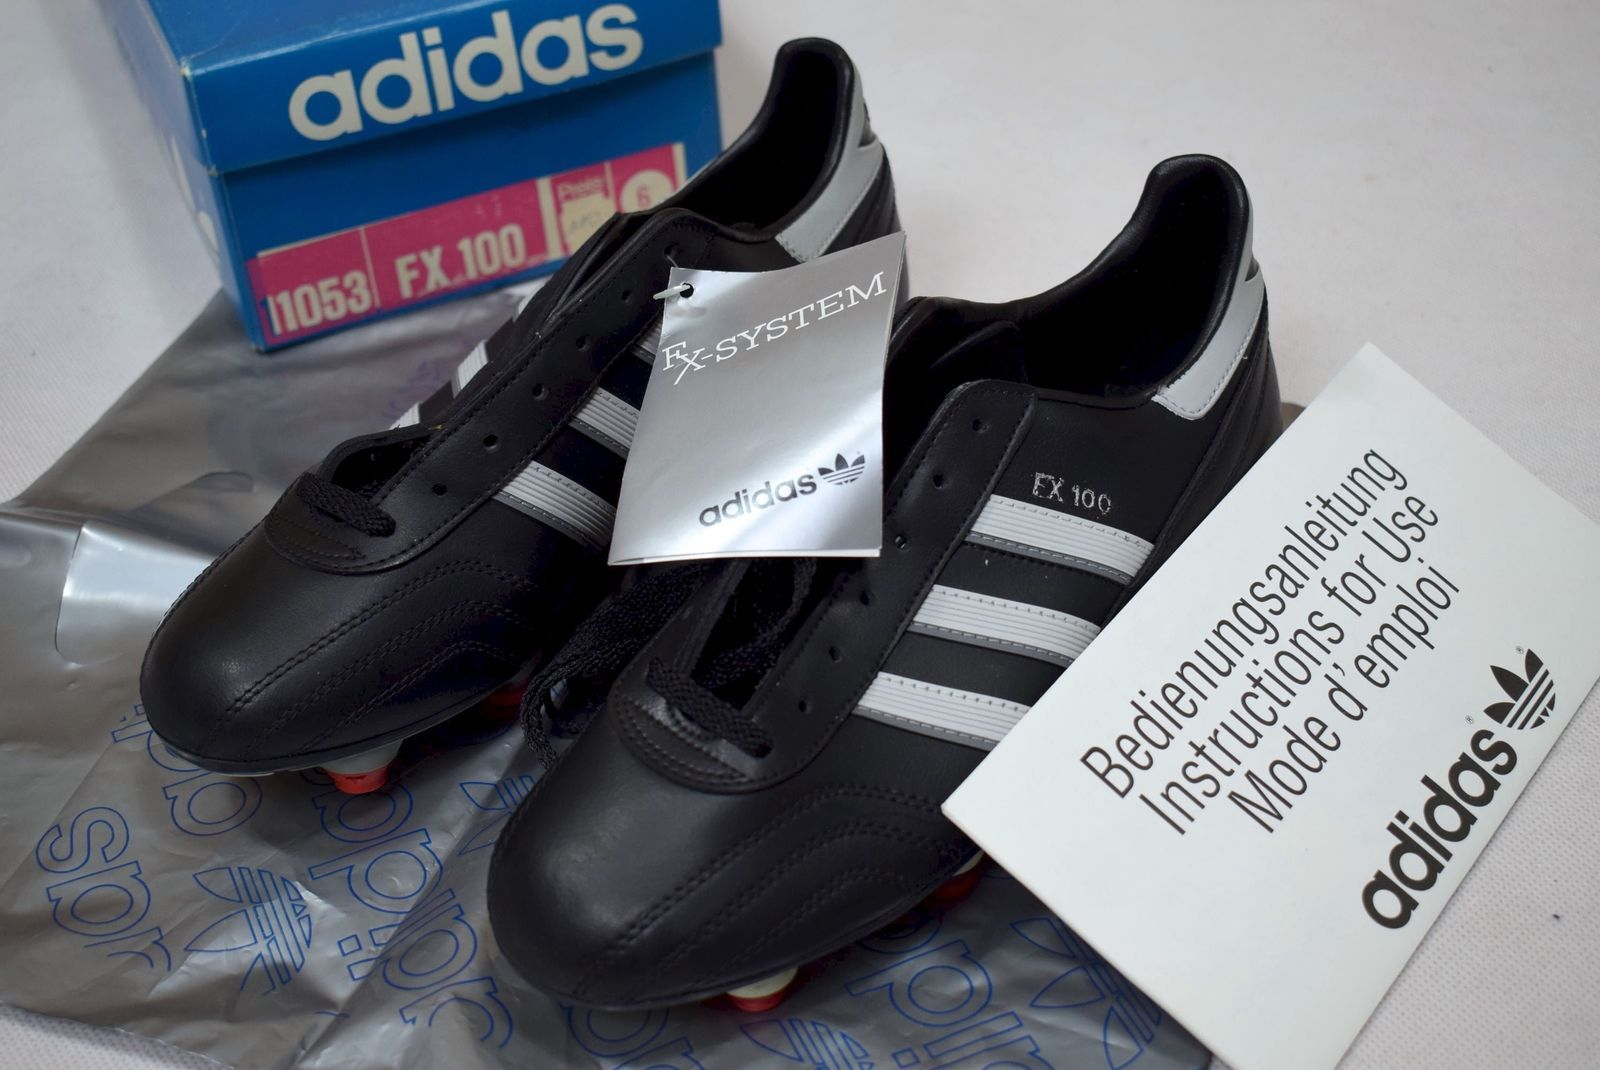 Adidas FX 100 Soccer Shoes Soccer Shoes Cleats Vintage